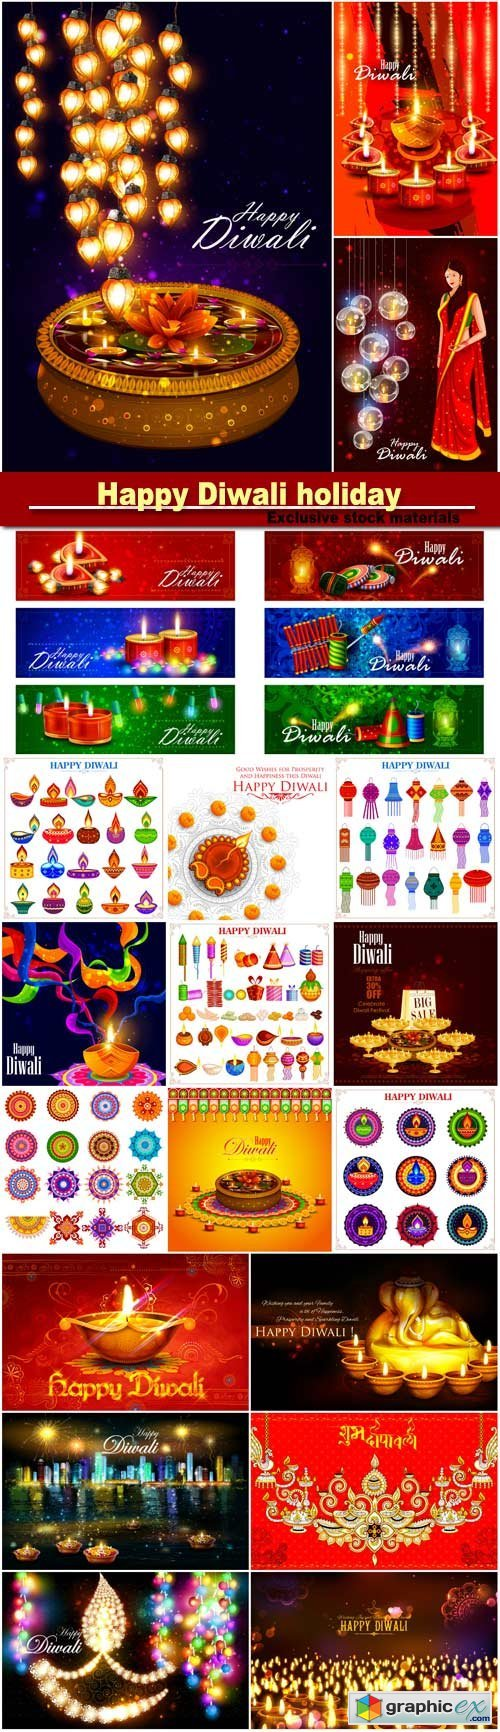 Happy Diwali holiday vector background